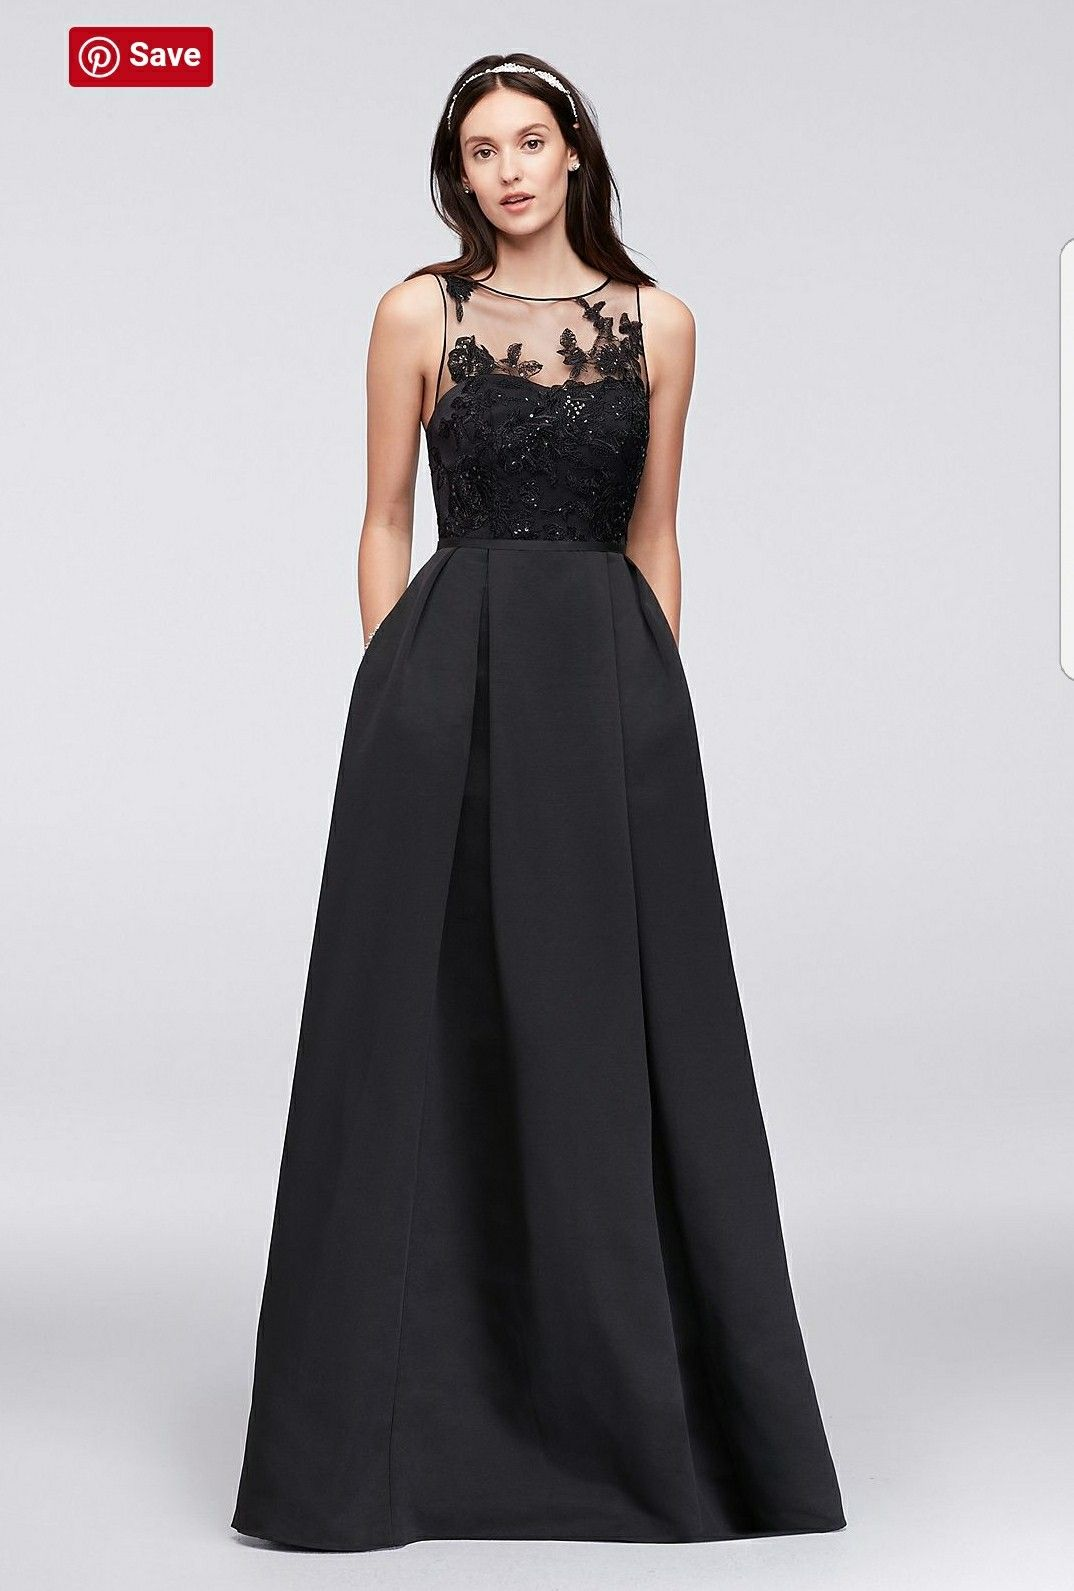 9d260aafff Browse David s Bridal stunning collection of black evening gowns   dresses  in long   short styles that are perfect for any black tie or fancy occasion.